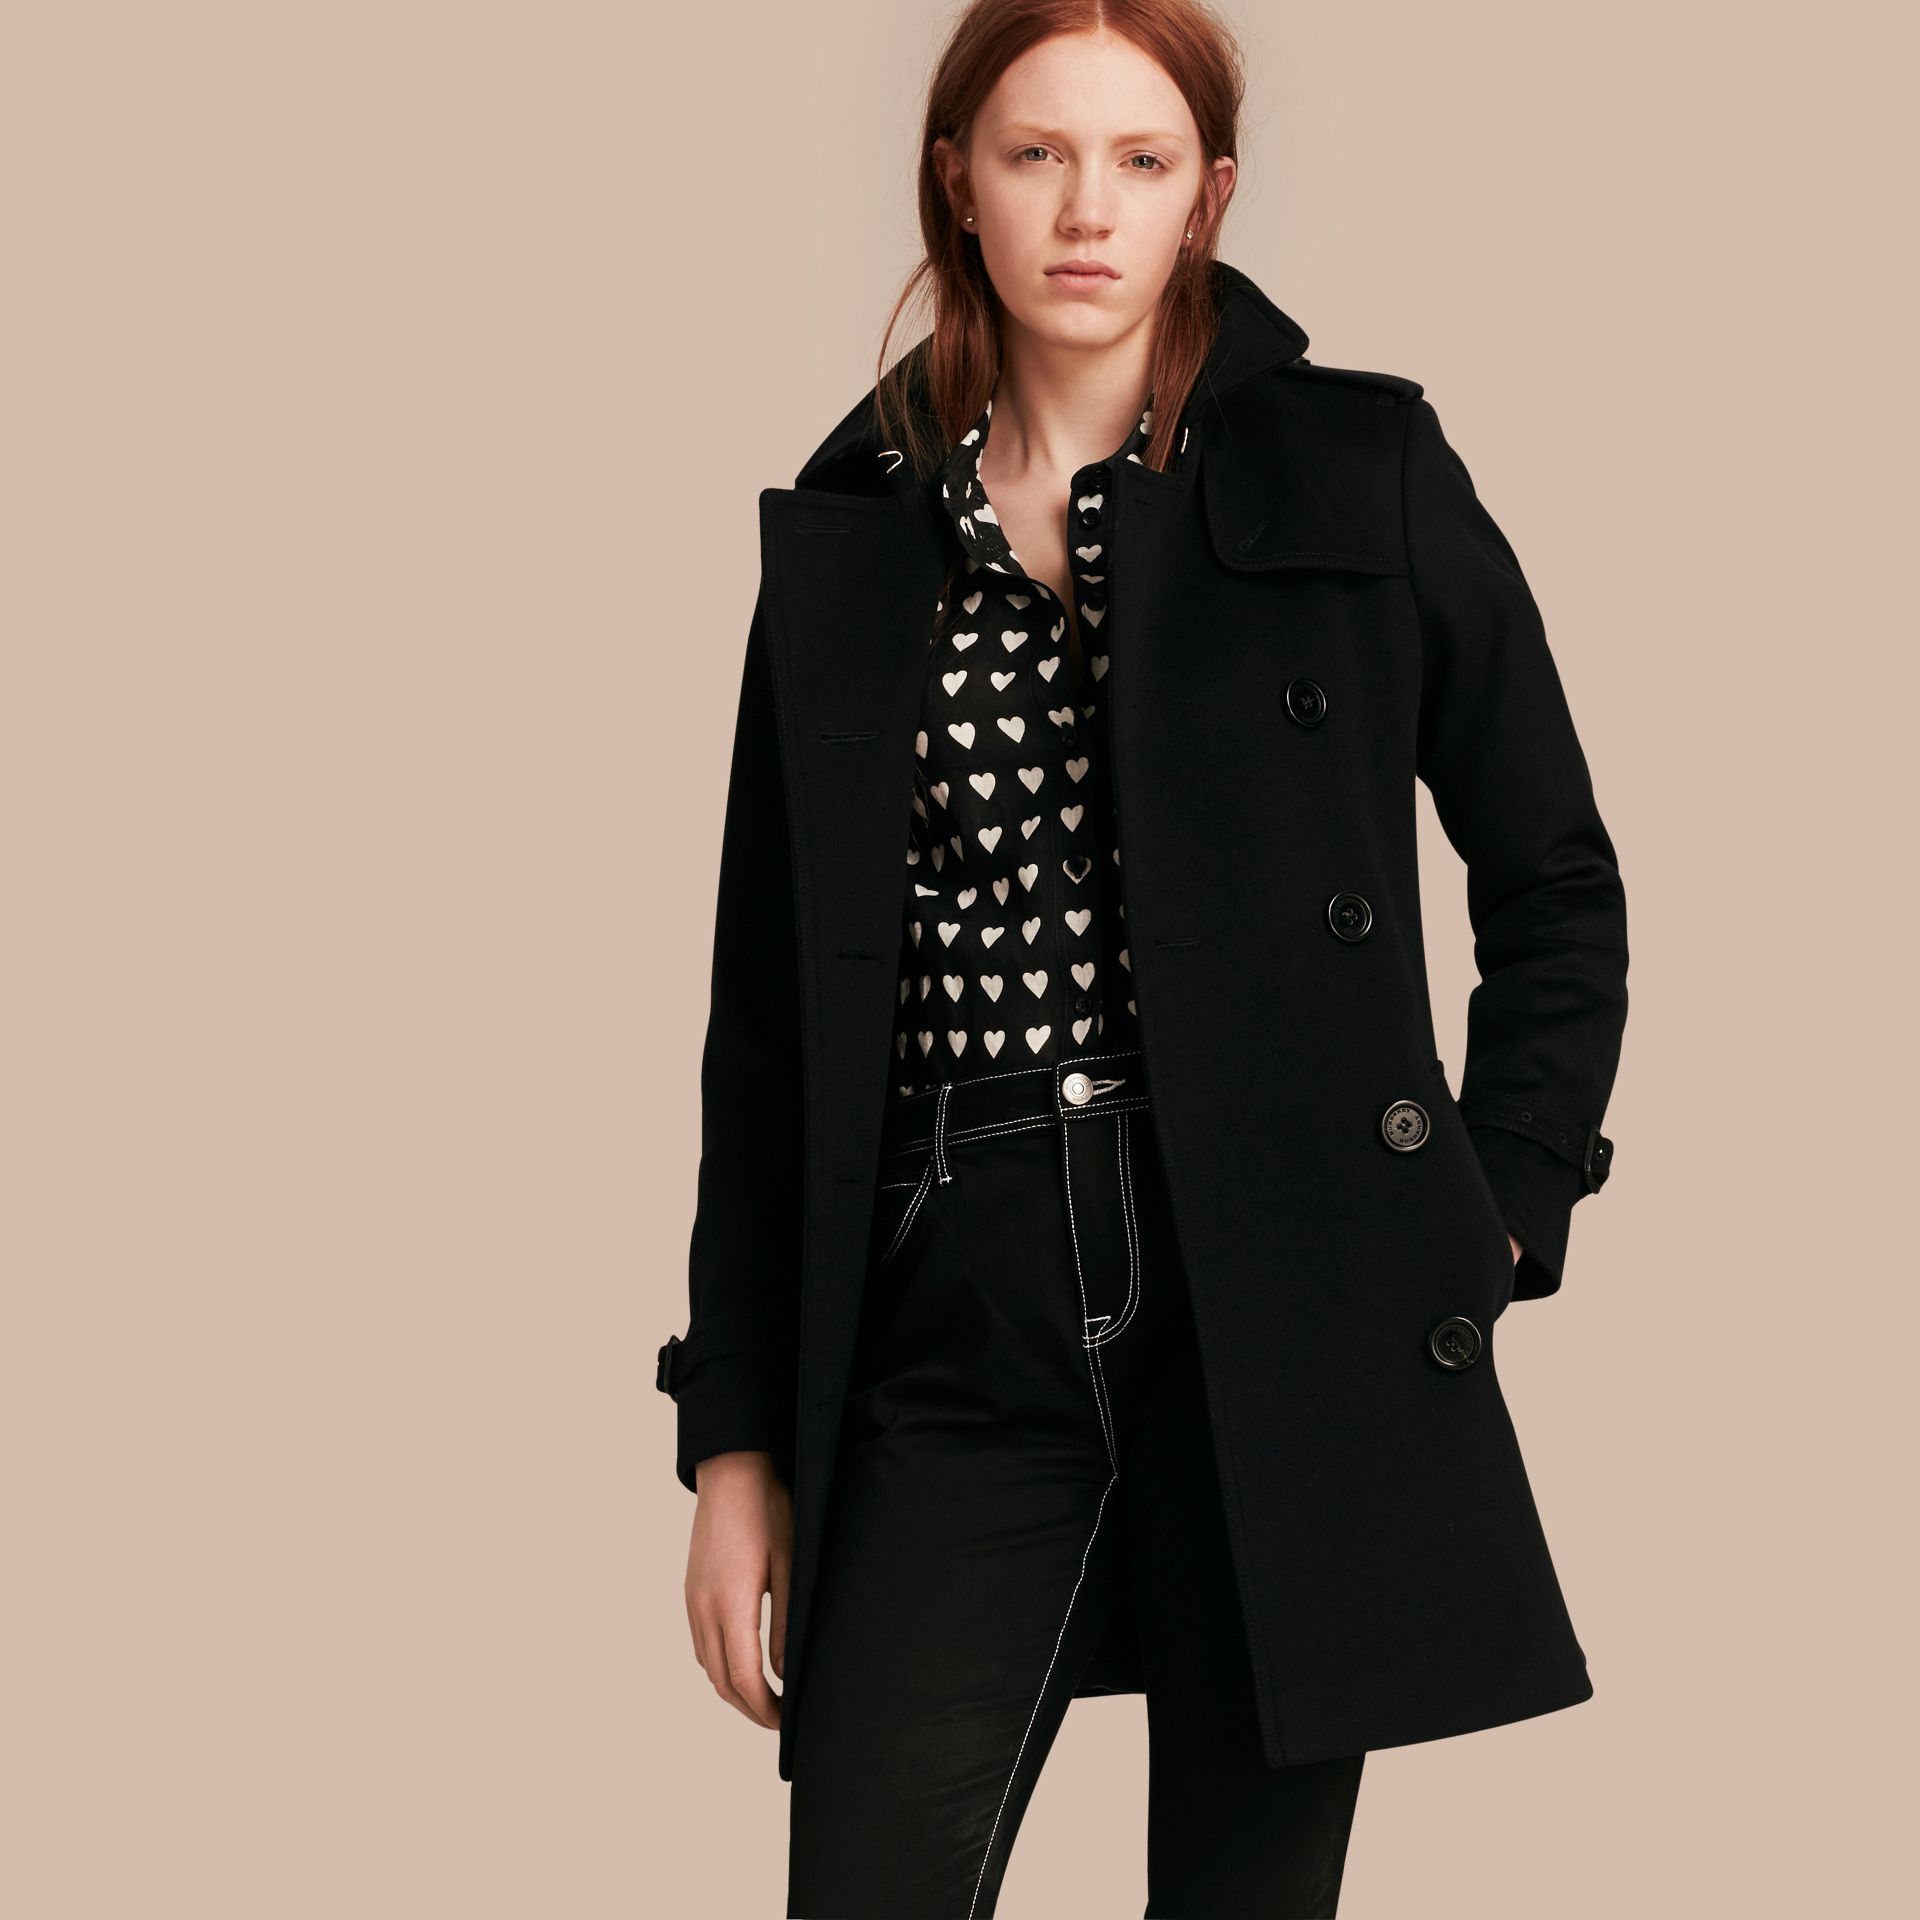 Wool Cashmere Trench Coat in Black - Women | Burberry Hong Kong - gallery image 1